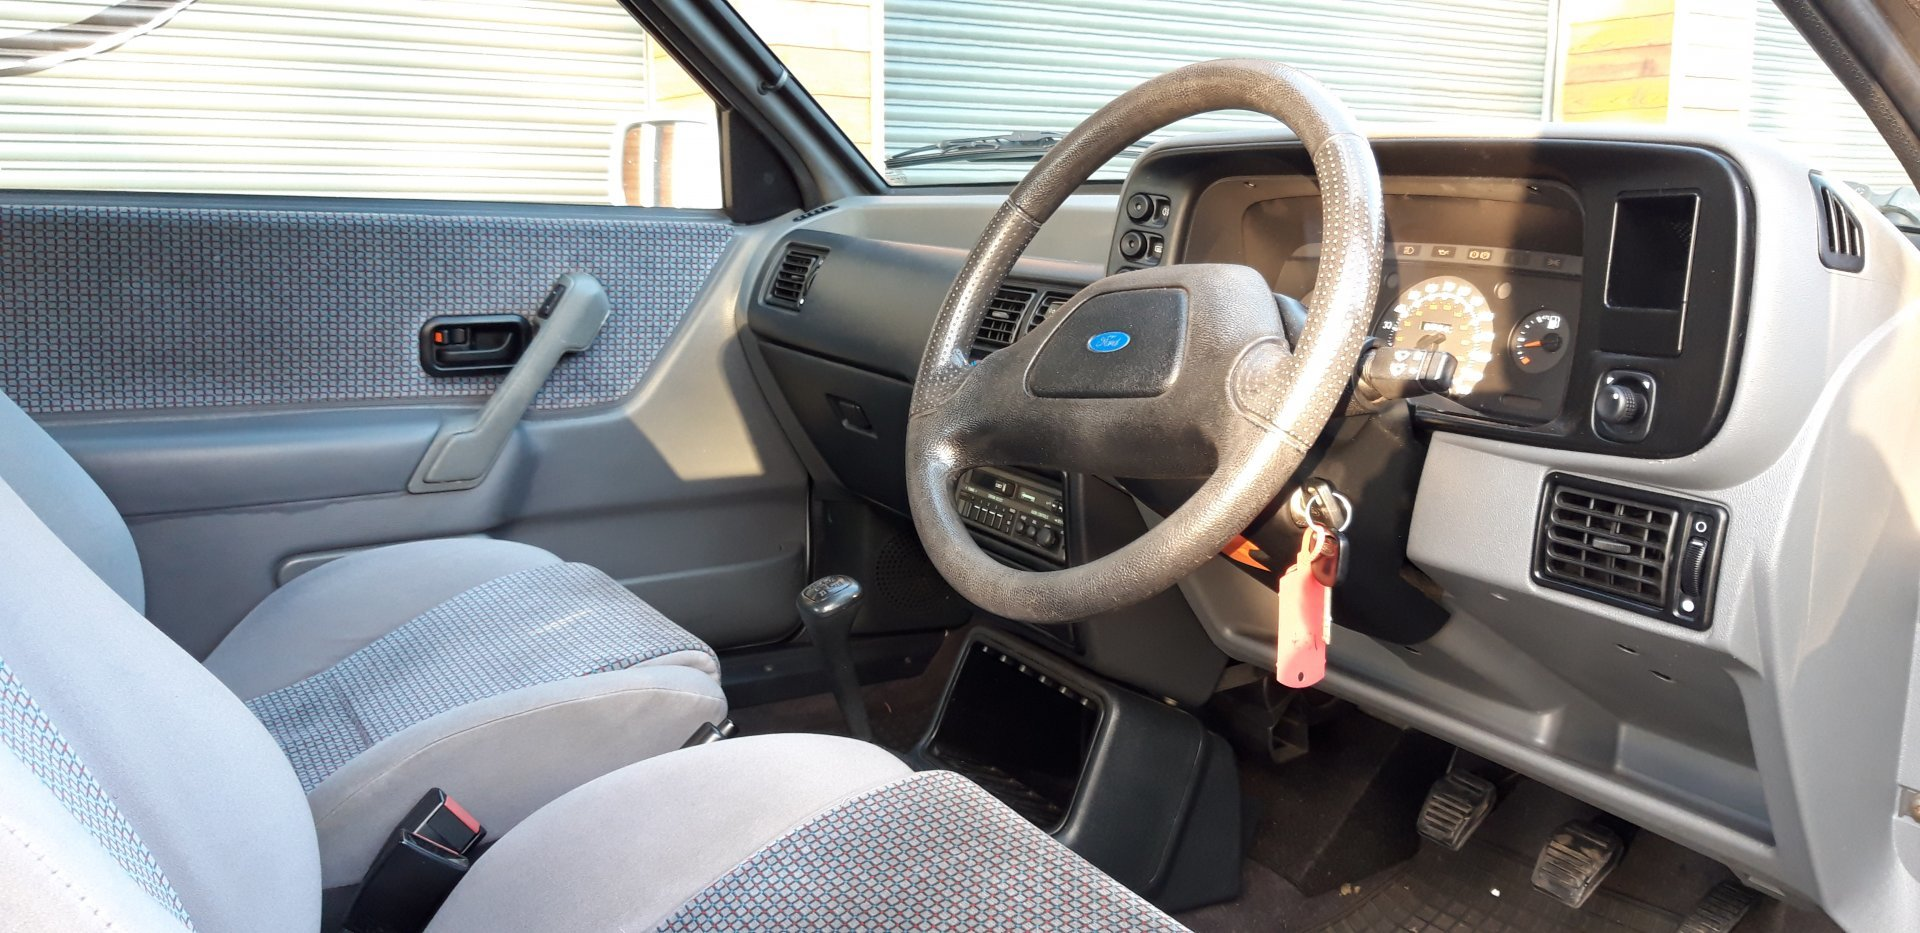 1989 Ford Escort XR3i For Sale (picture 5 of 6)